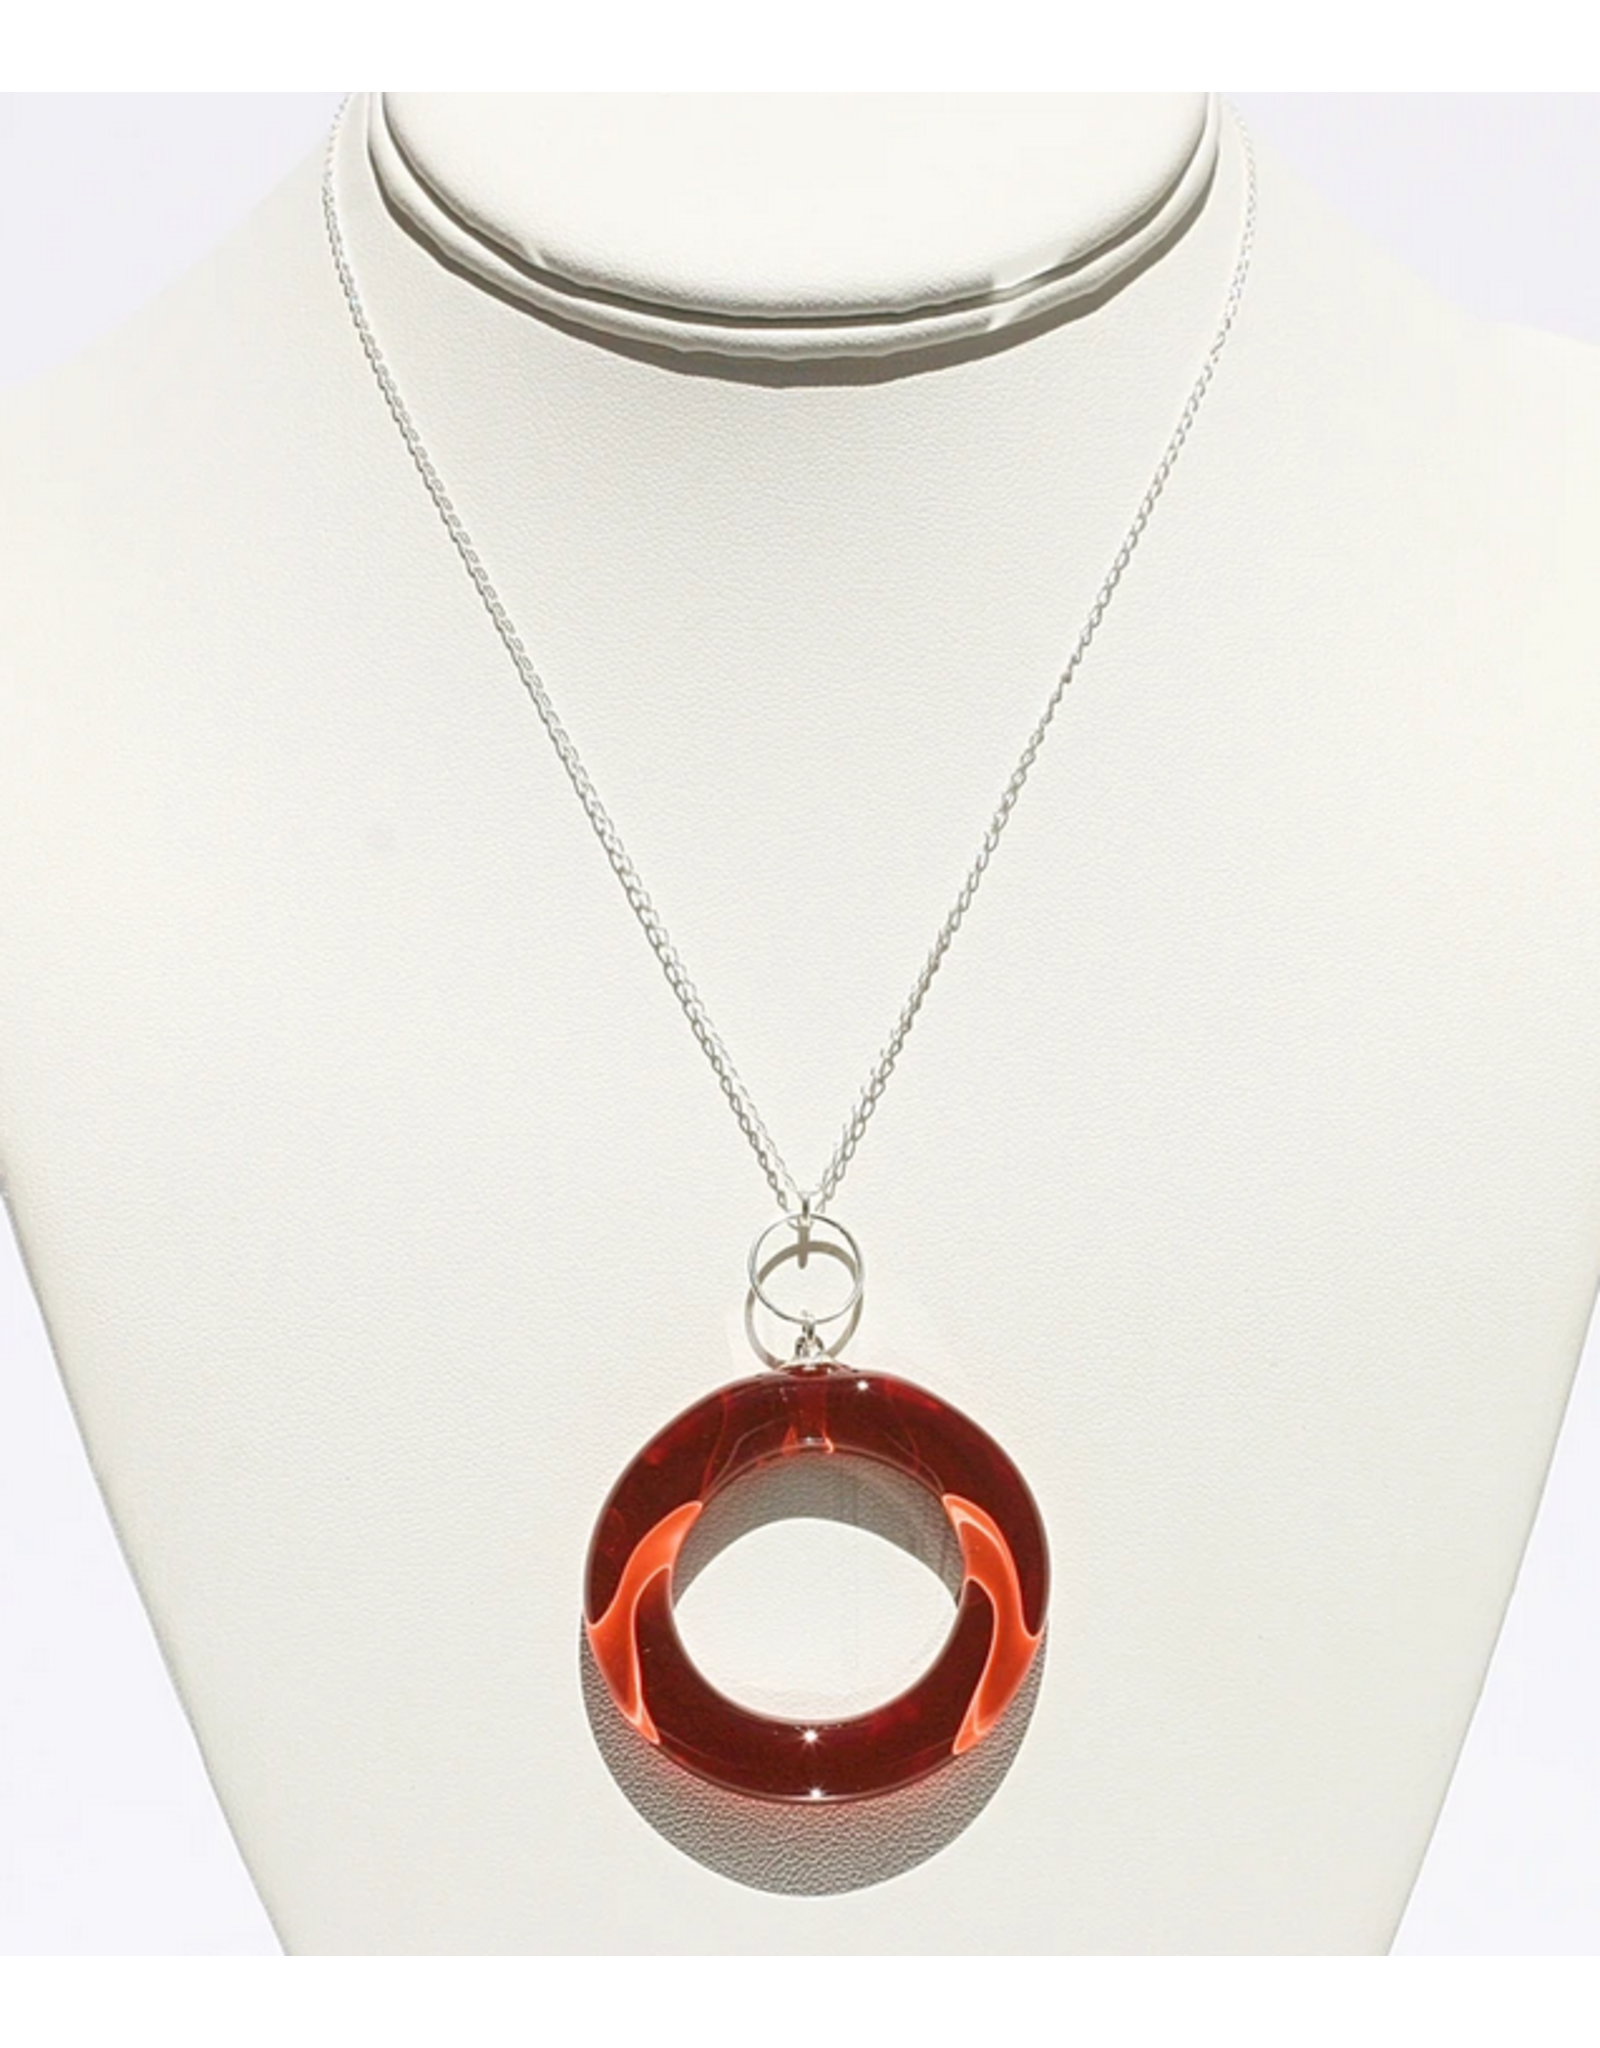 Perfecto Glass PENDANT NECKLACE (Large Hollow Circle, PERF)